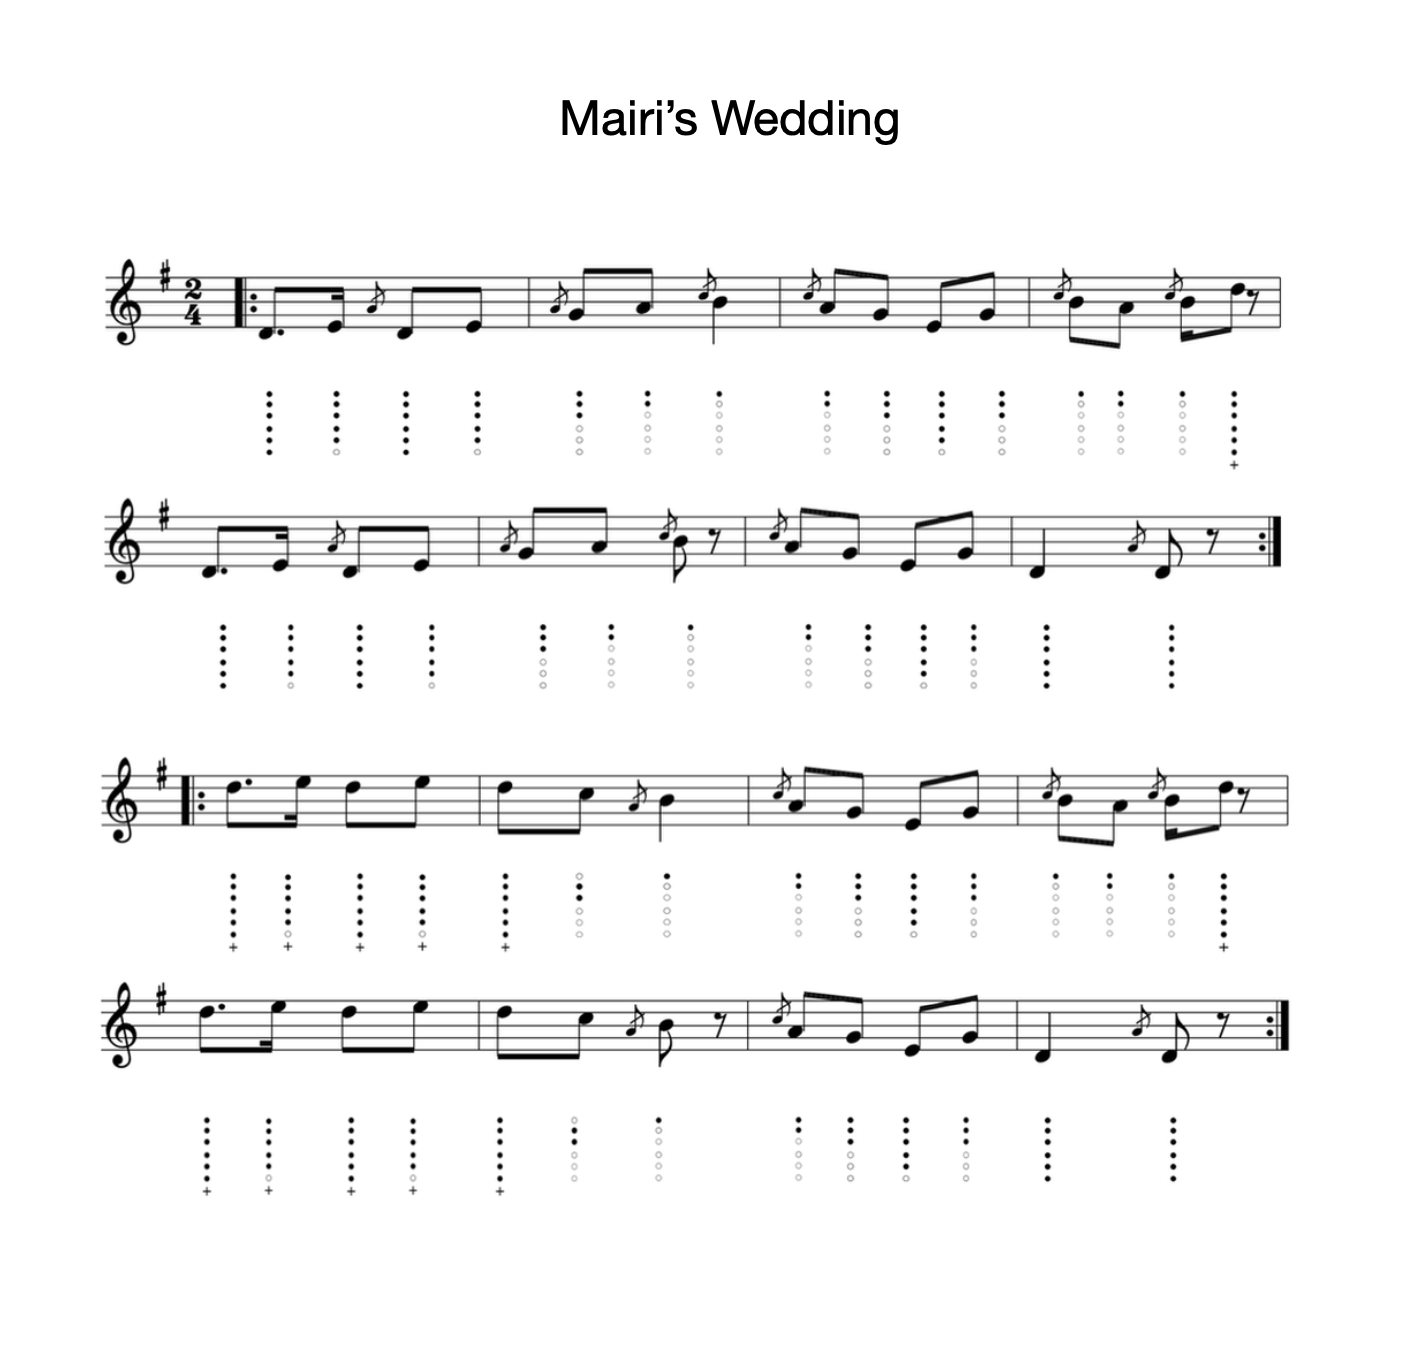 Learn How To Play Mairis Wedding On The Bagpipes For Free